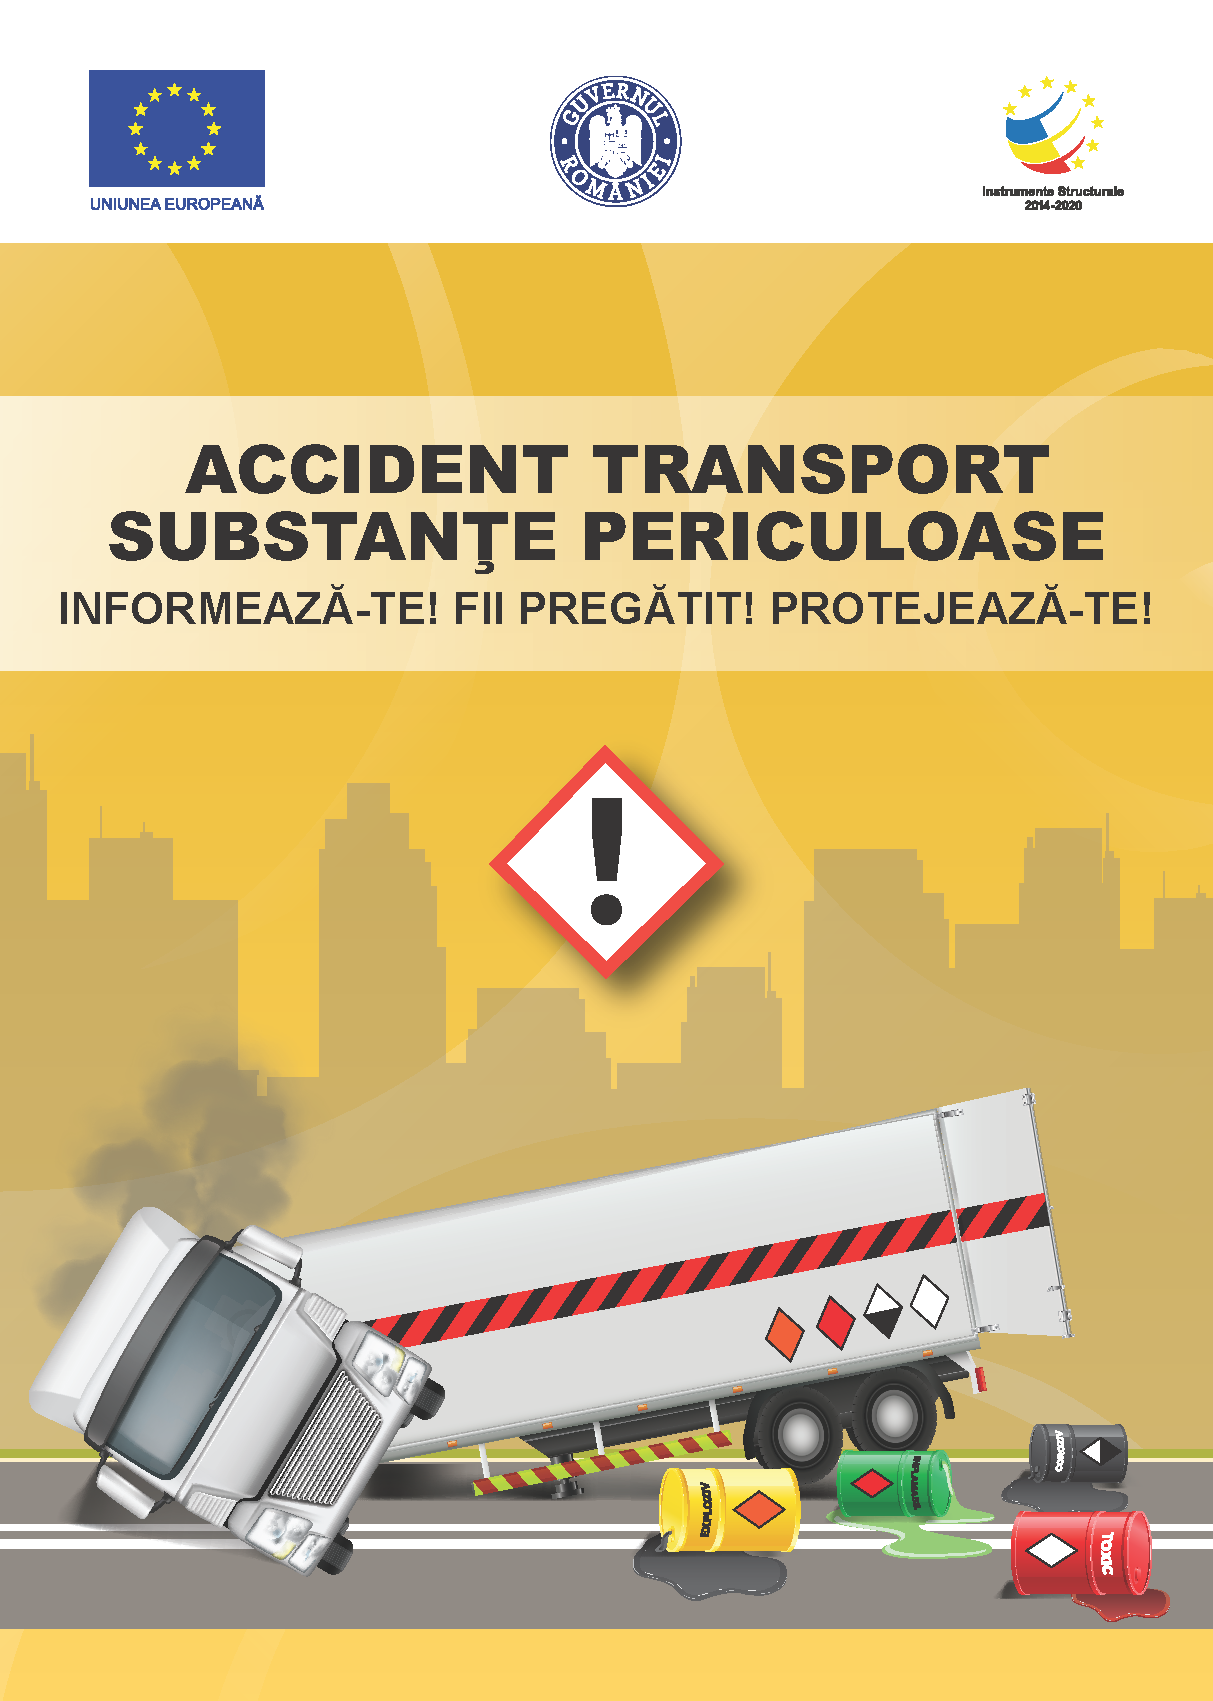 Transport substanțe periculoase F